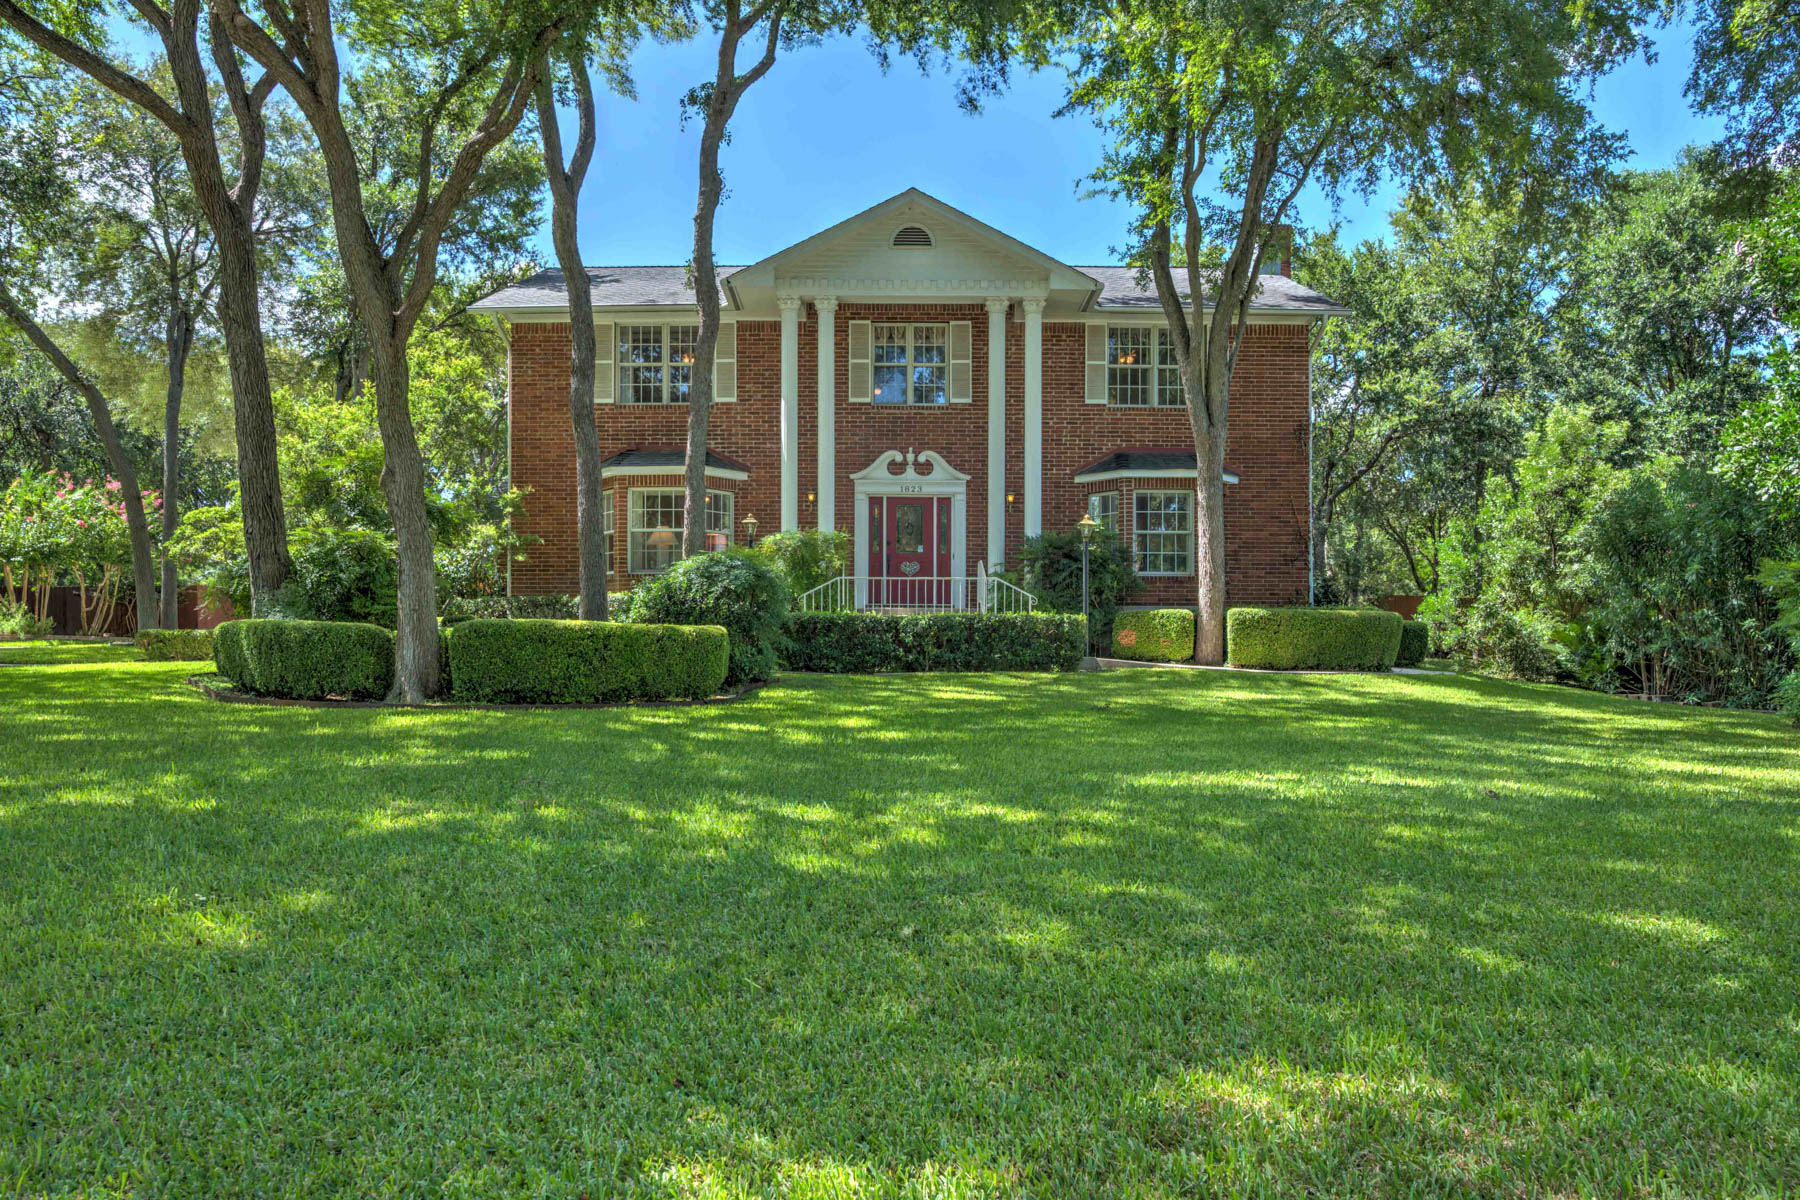 Single Family Home for Sale at Gorgeous Home in Cypress Rapids 1823 Pebble Brook Dr New Braunfels, Texas 78130 United States